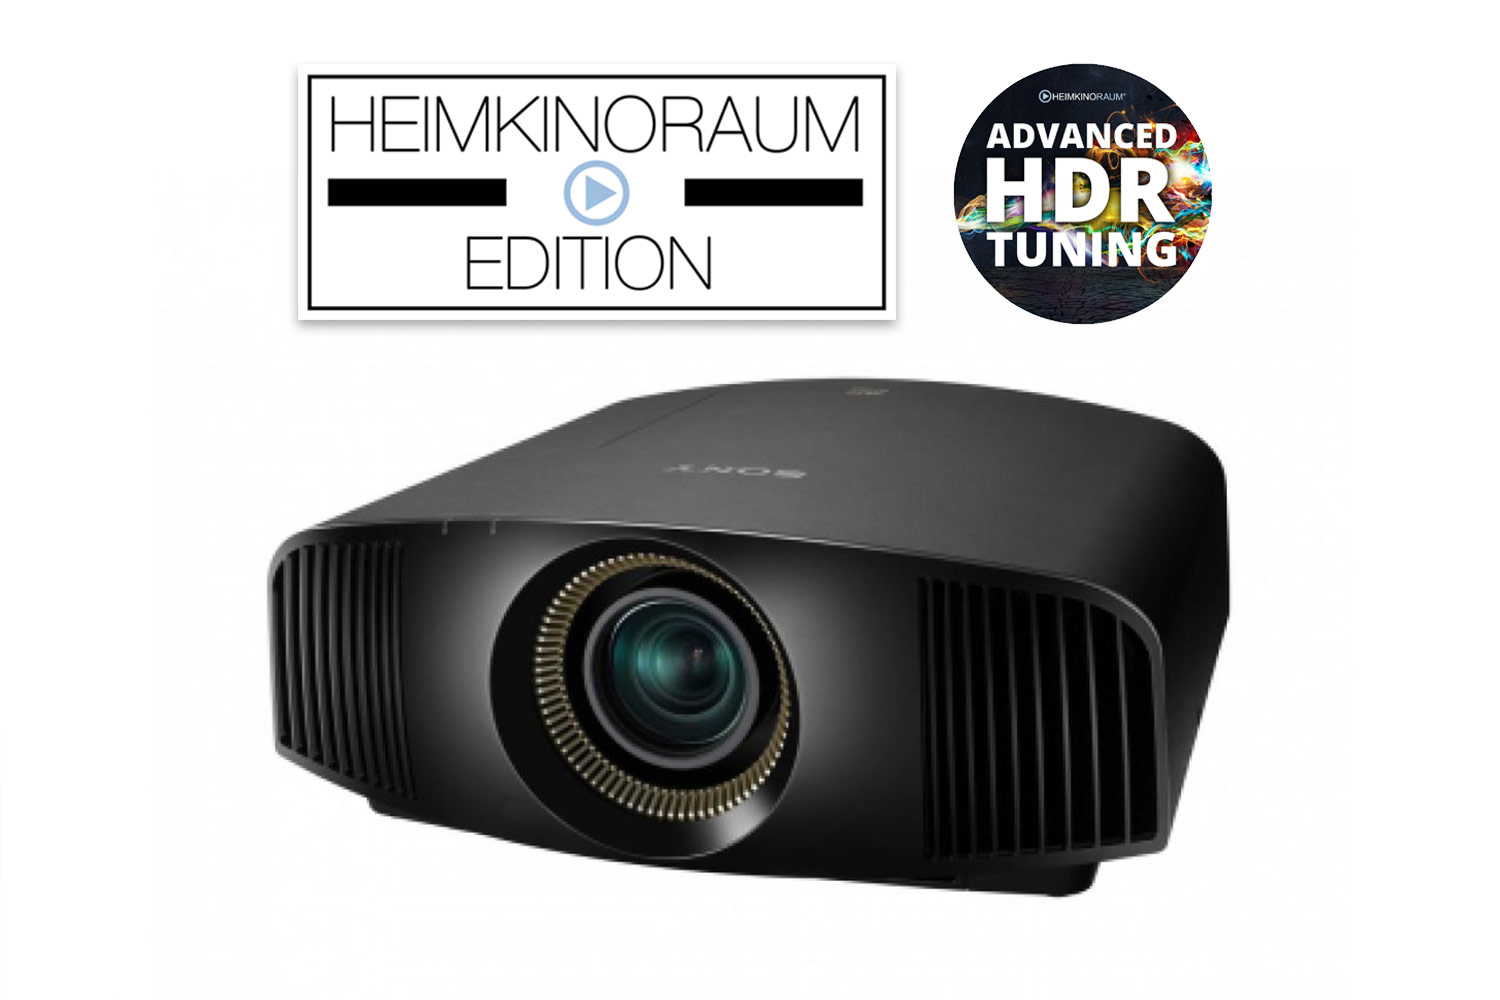 Sony VPL-VW360ES - UltraHD HDR 3D Beamer - HEIMKINORAUM Edition